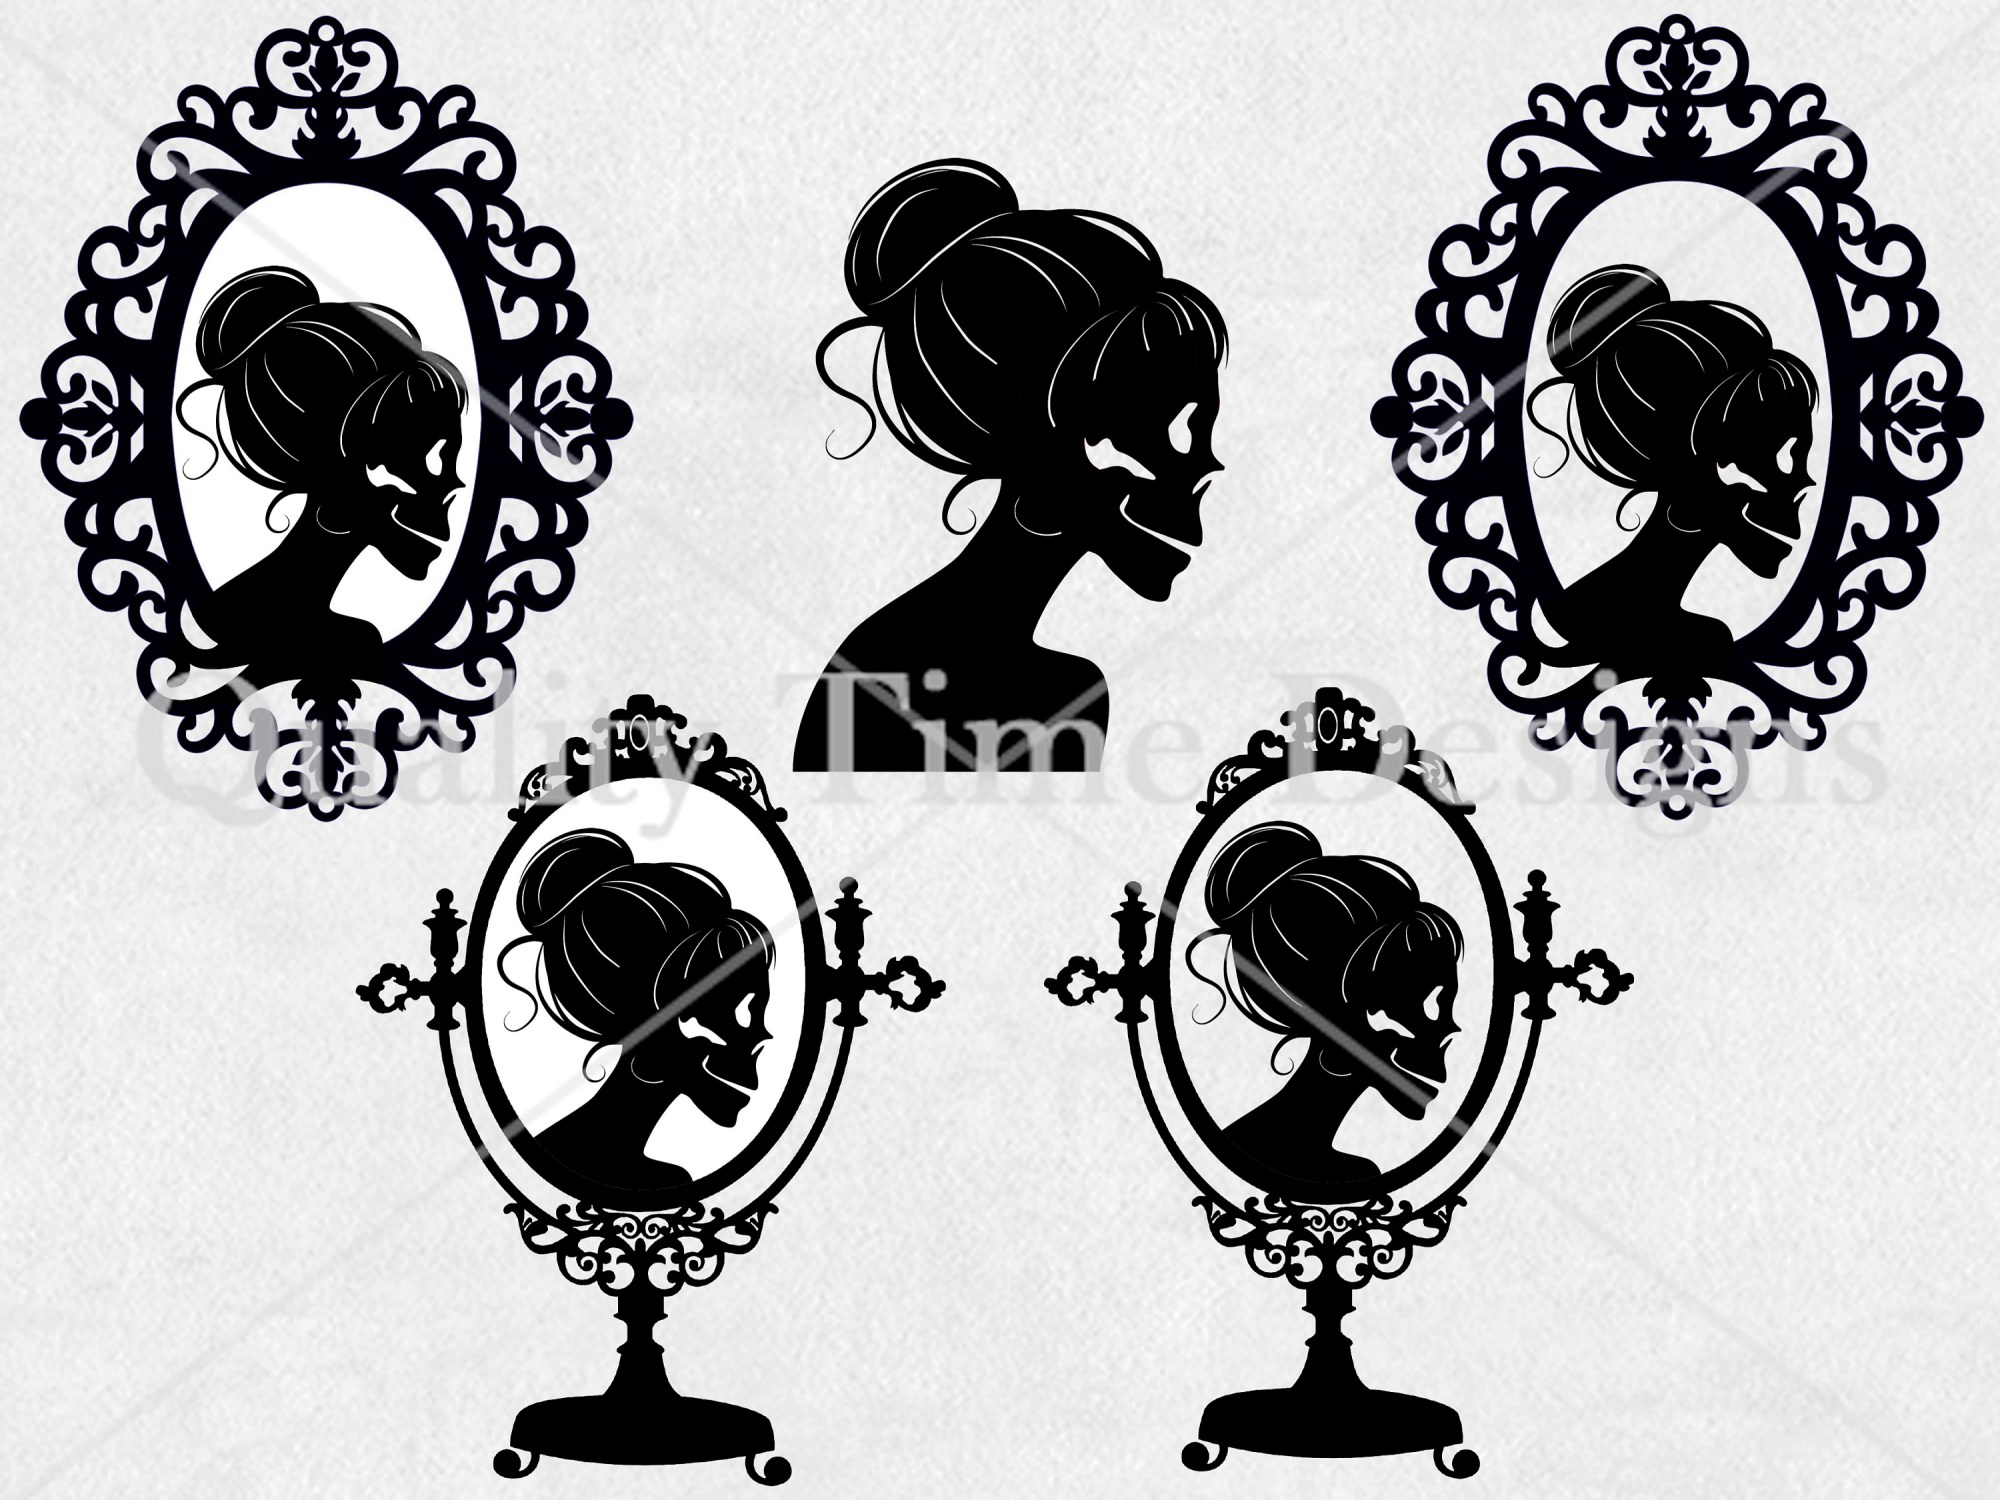 hight resolution of halloween clipart set skeleton lady silhouette vintage frame messy bun clipart holiday digital graphic set spooky clipart clip art